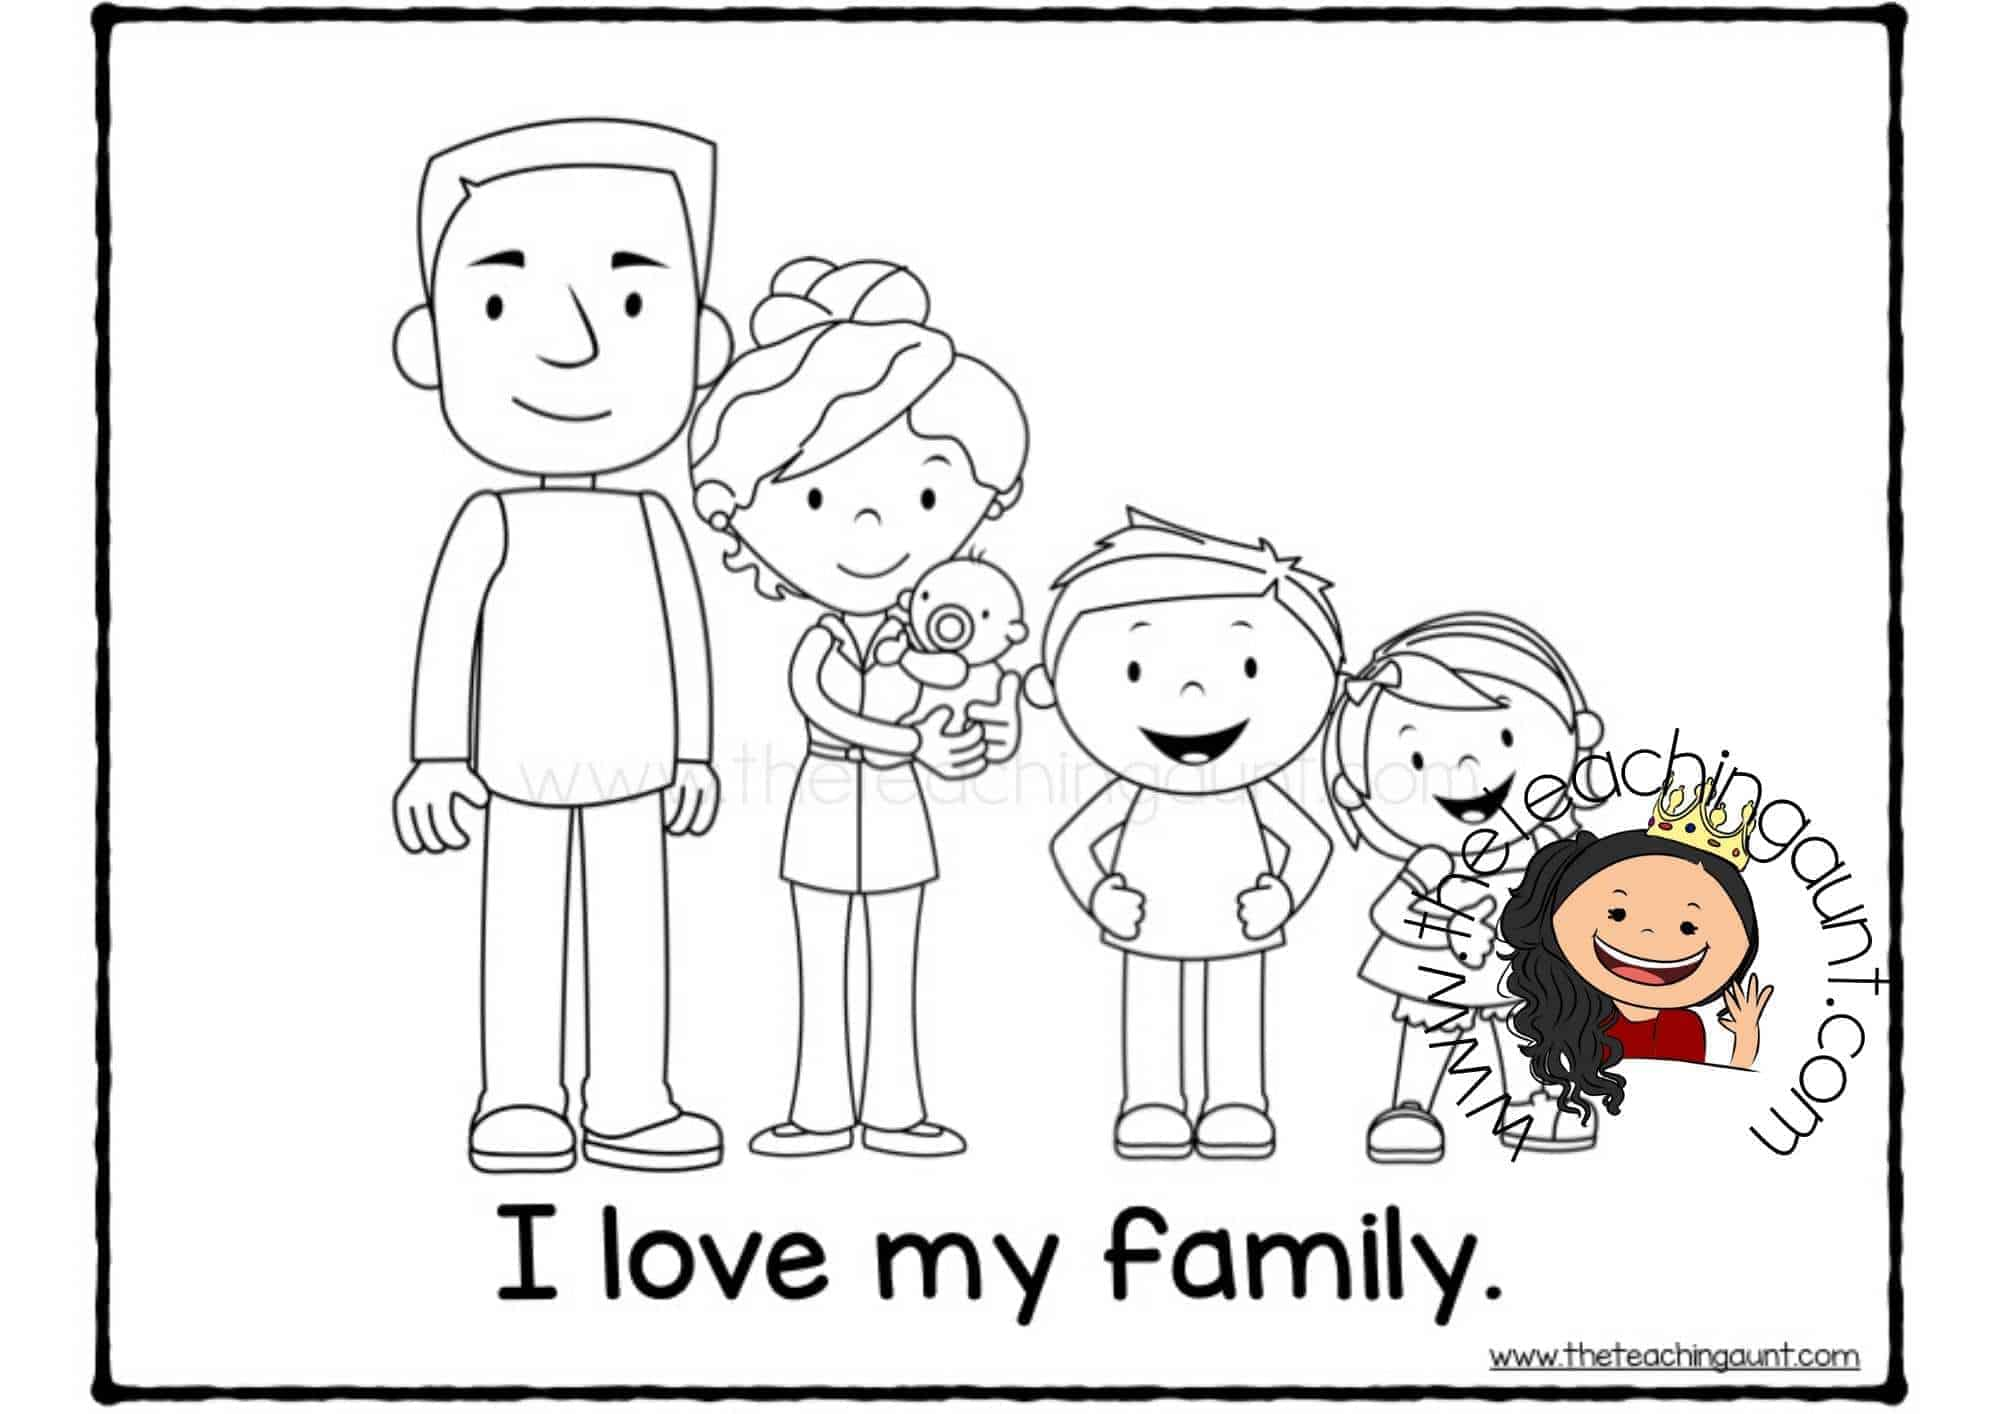 Free Family Members Coloring Pages- I love my family